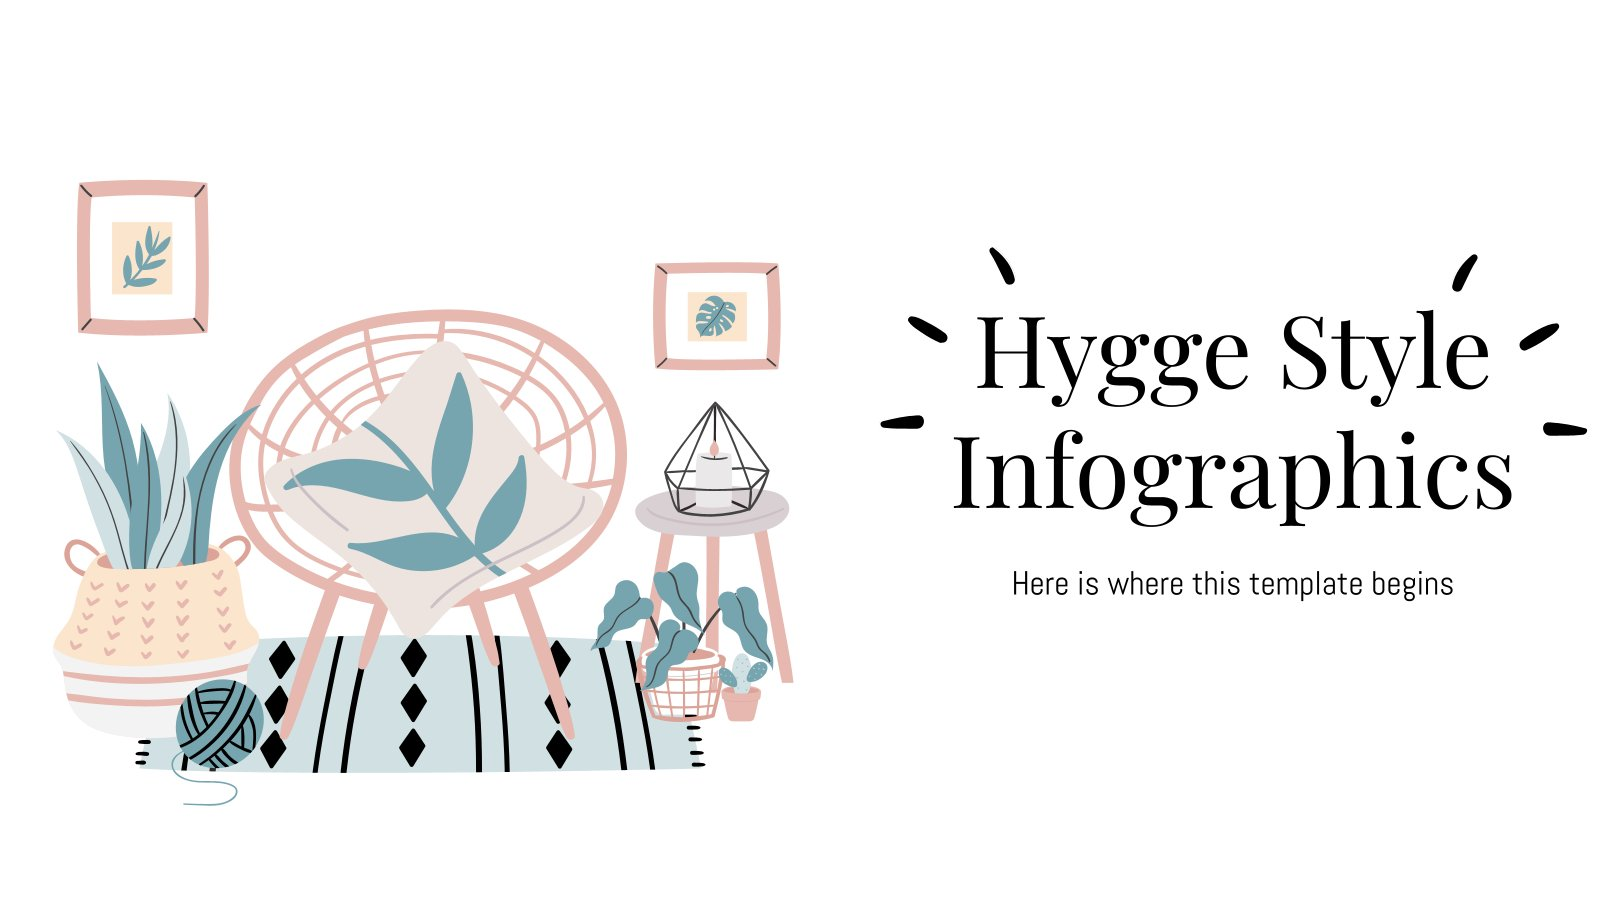 Hygge Style Infographics presentation template